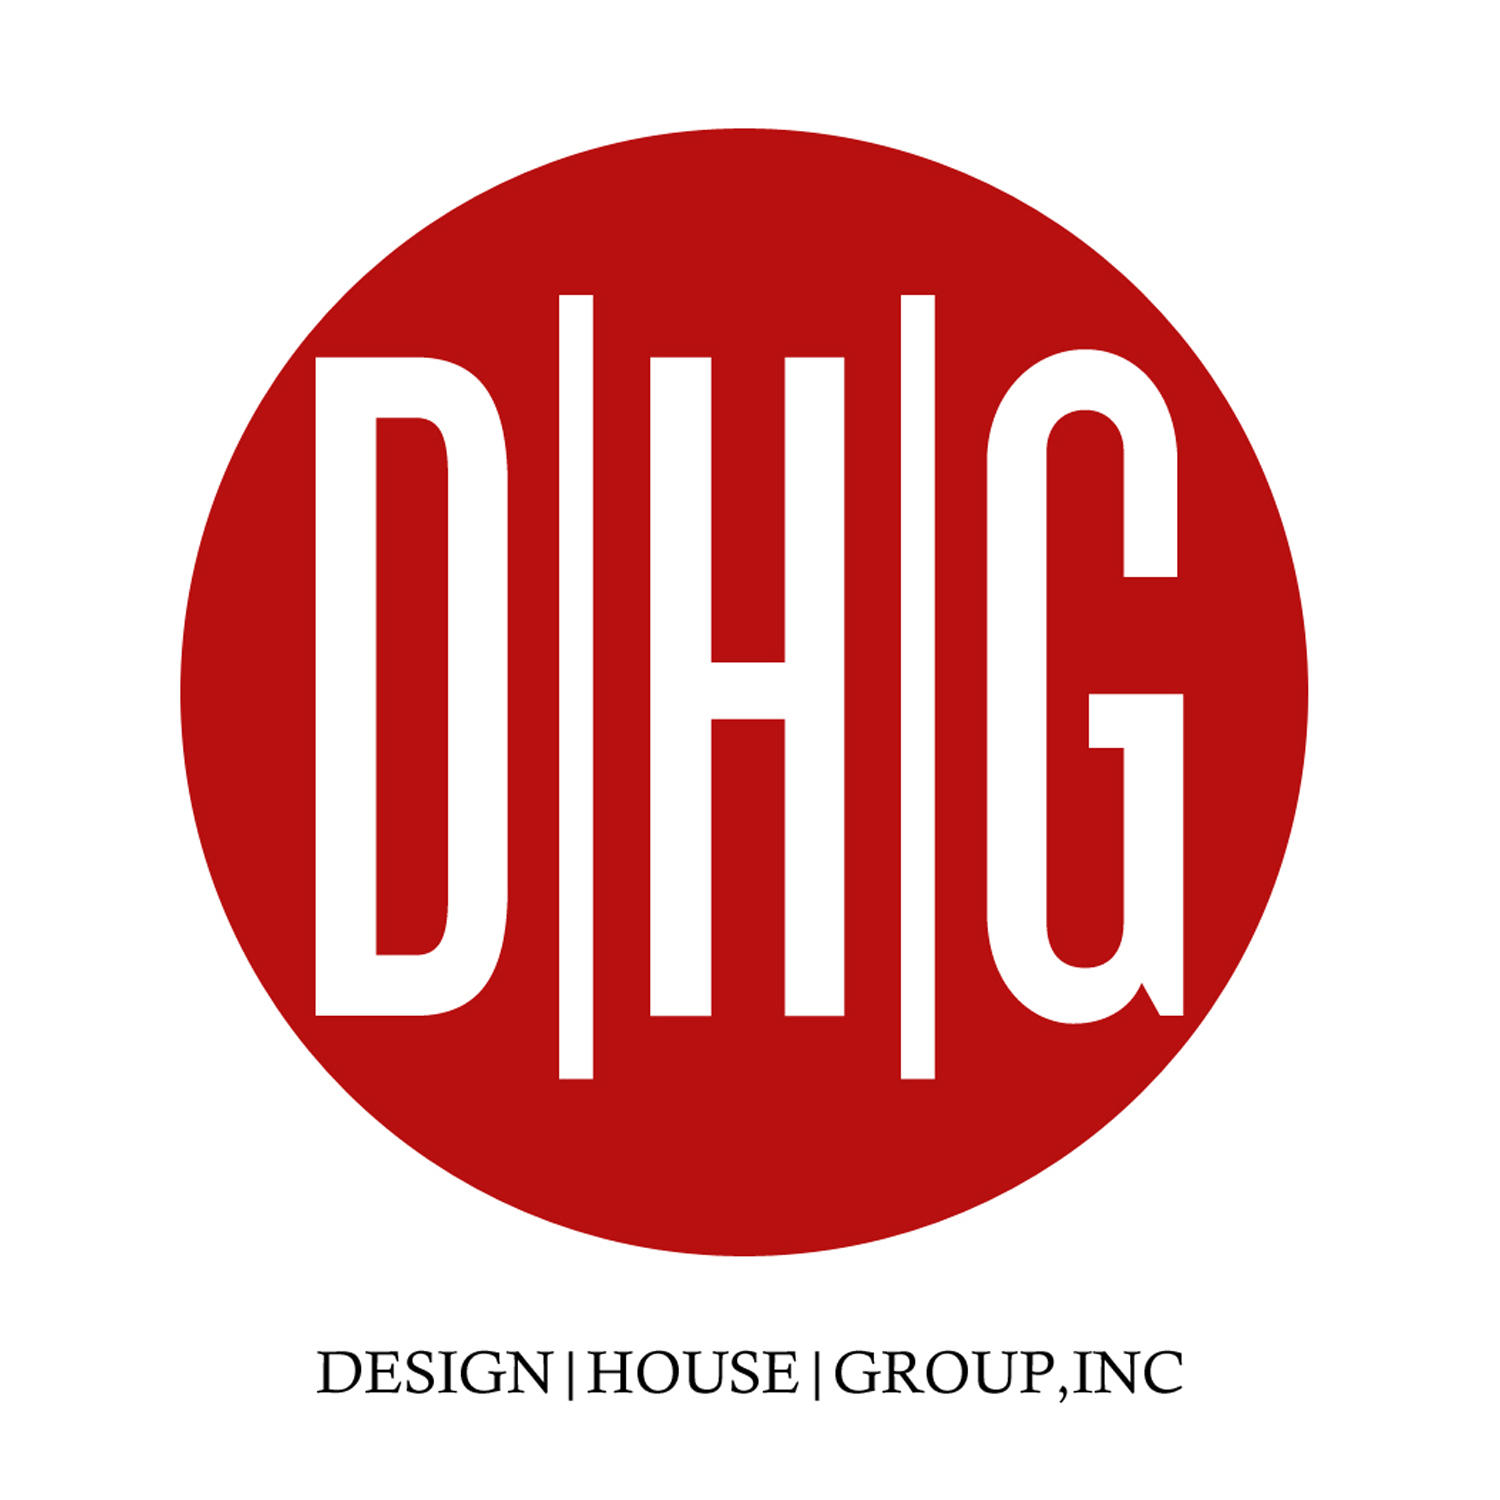 Design house group inc Design house inc